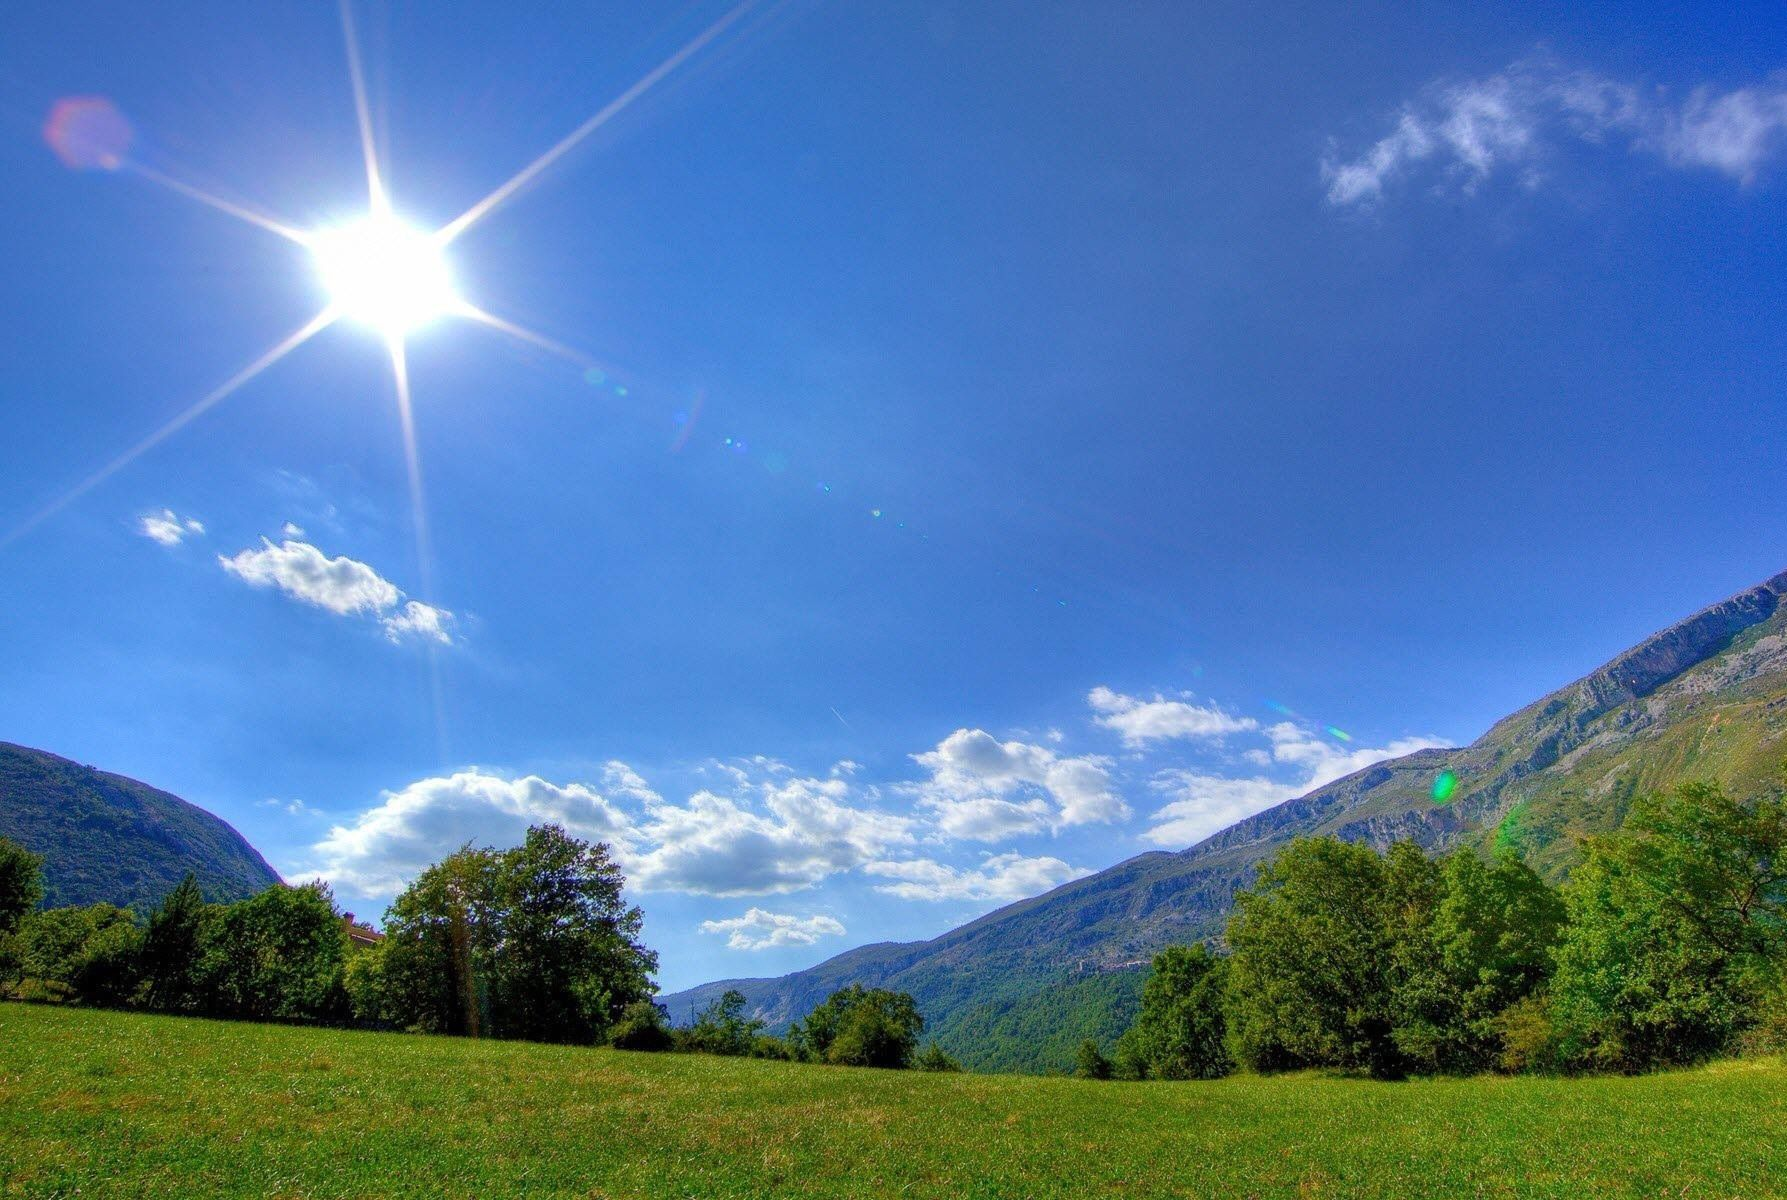 A Sunny Day In The Mountains Sunny Day Images Springtime Pictures Nature Wallpaper